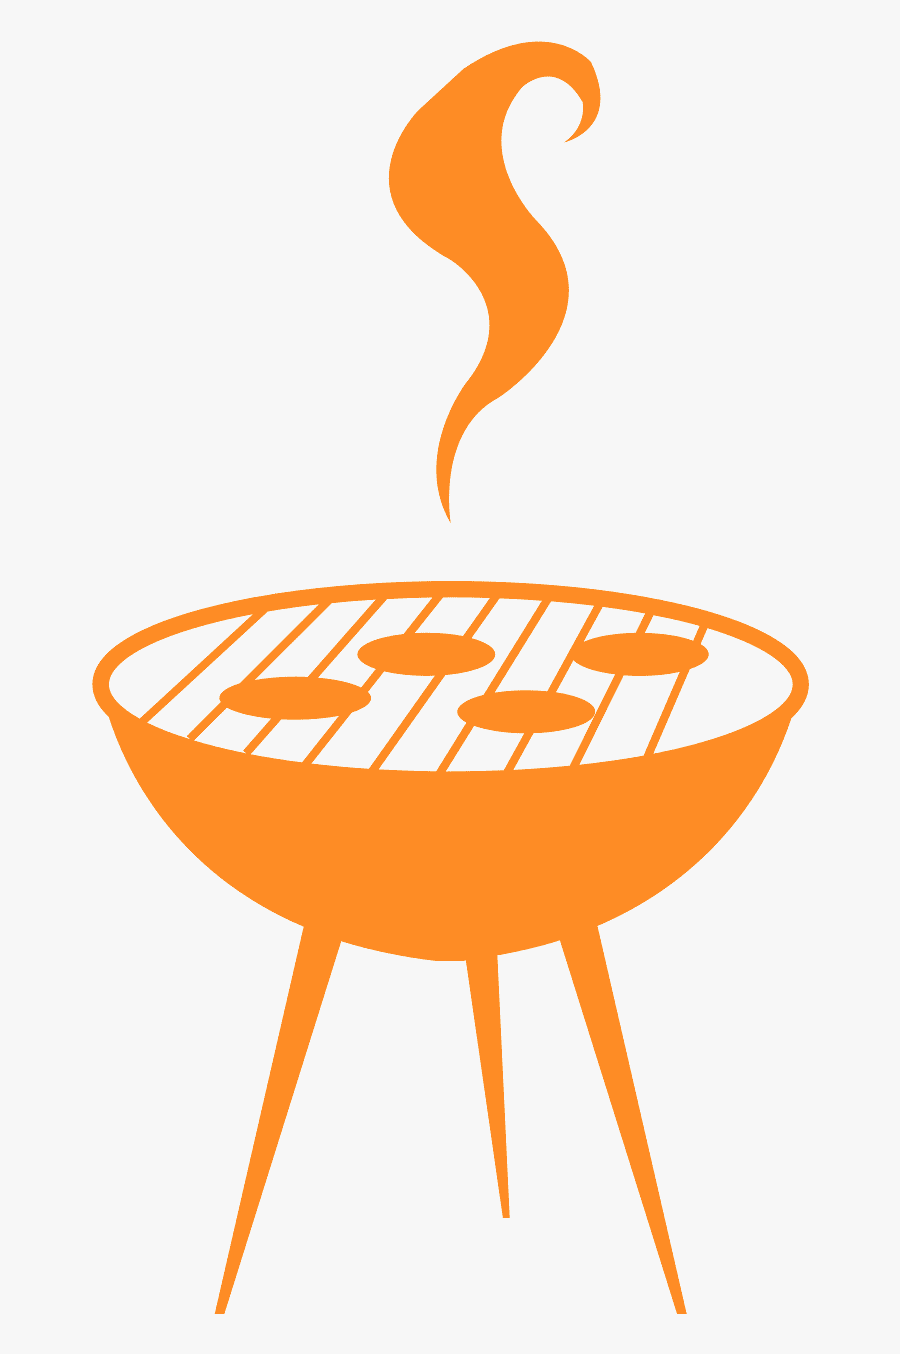 Bbq Clipart Silhouette - Bbq Vector Graphic Orange, Transparent Clipart